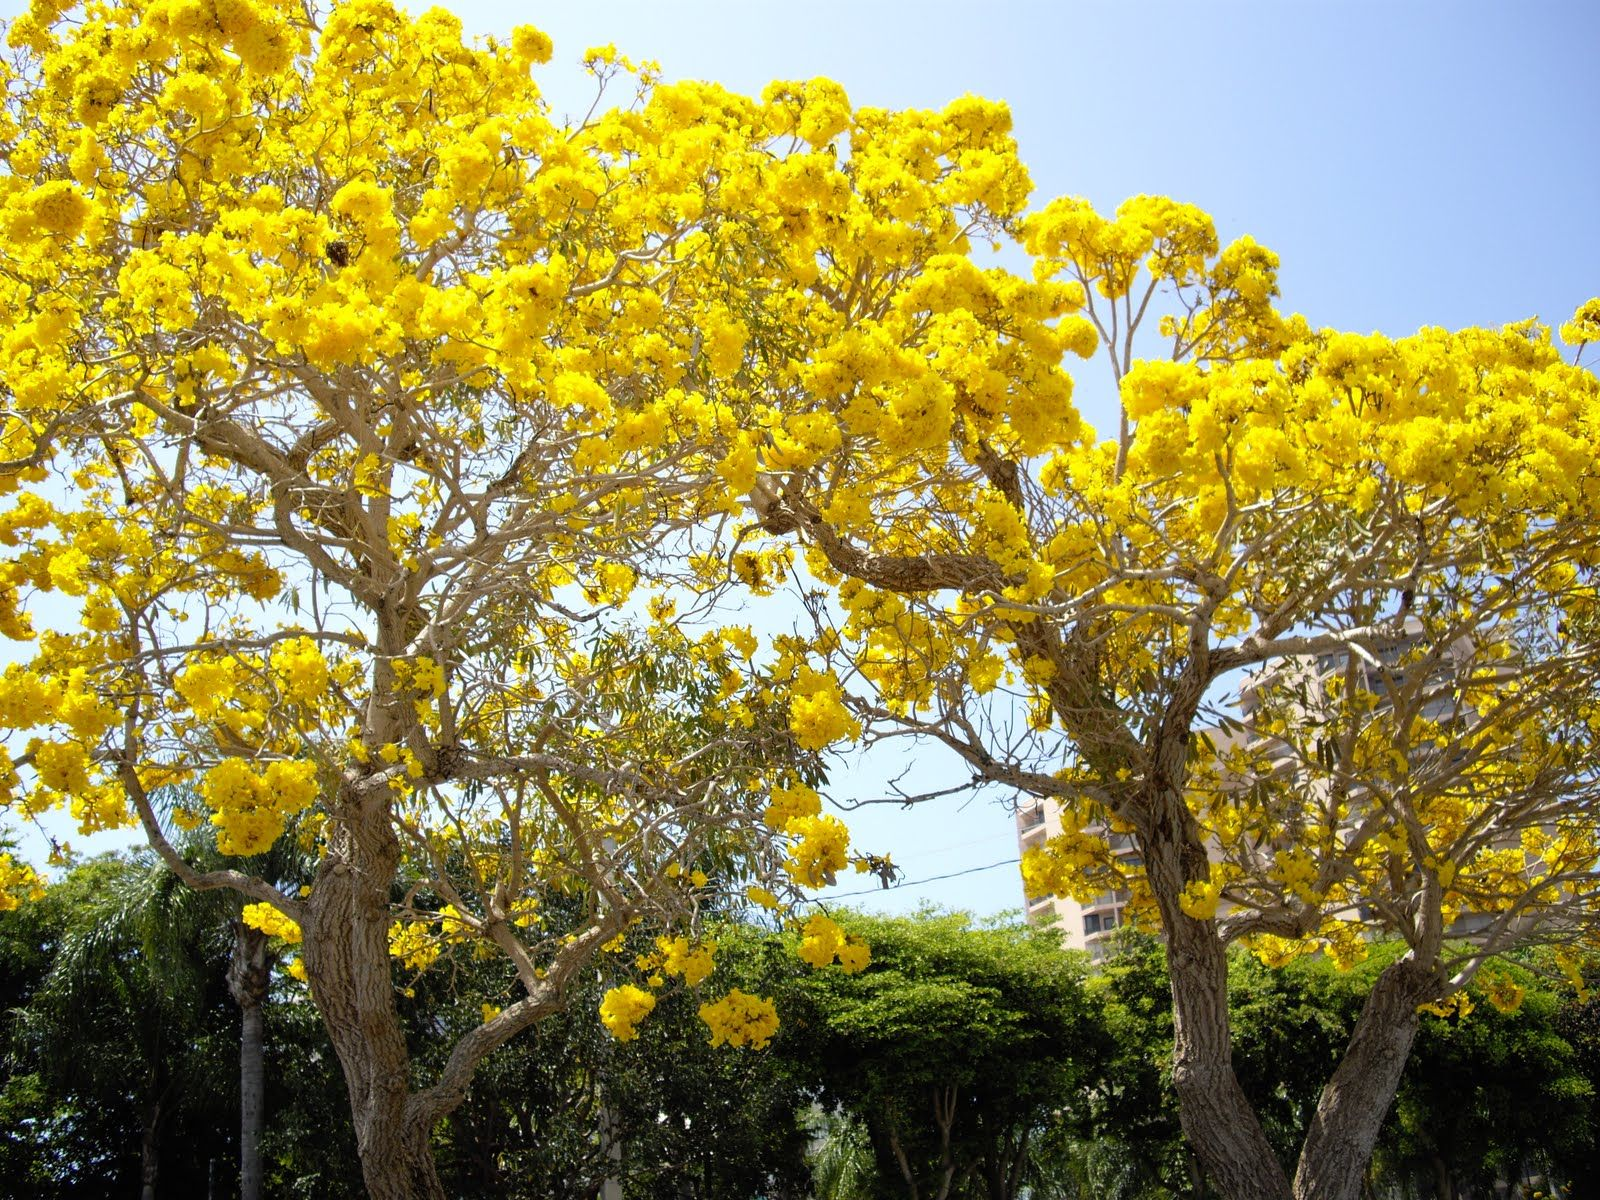 We call them the yellow trumpet trees but the real name is for Garden trees with yellow flowers